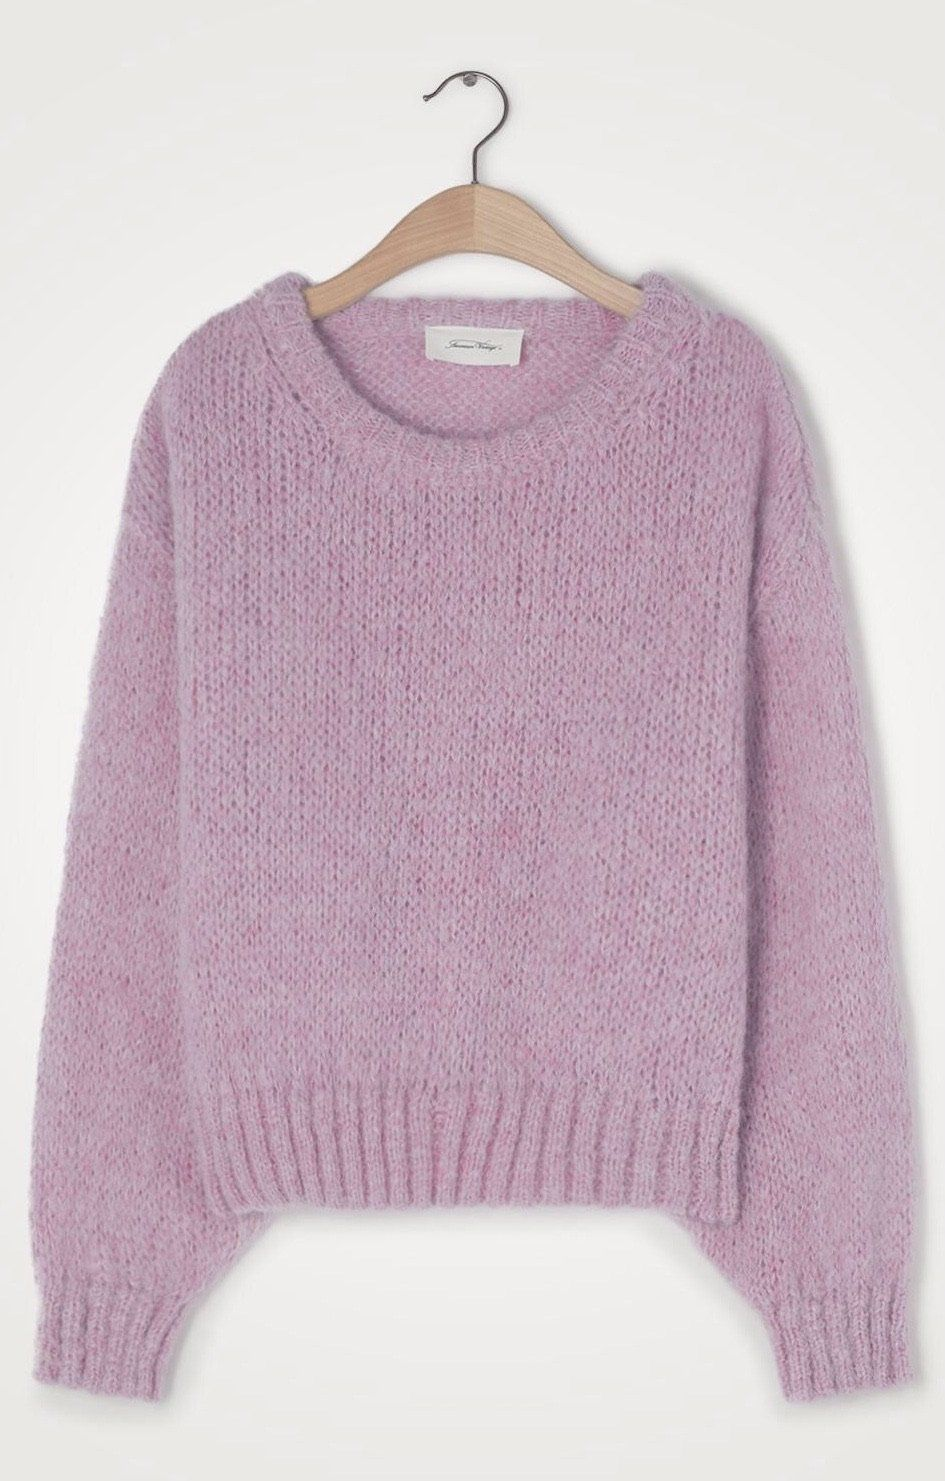 American Vintage Lilac Jumper XS/S